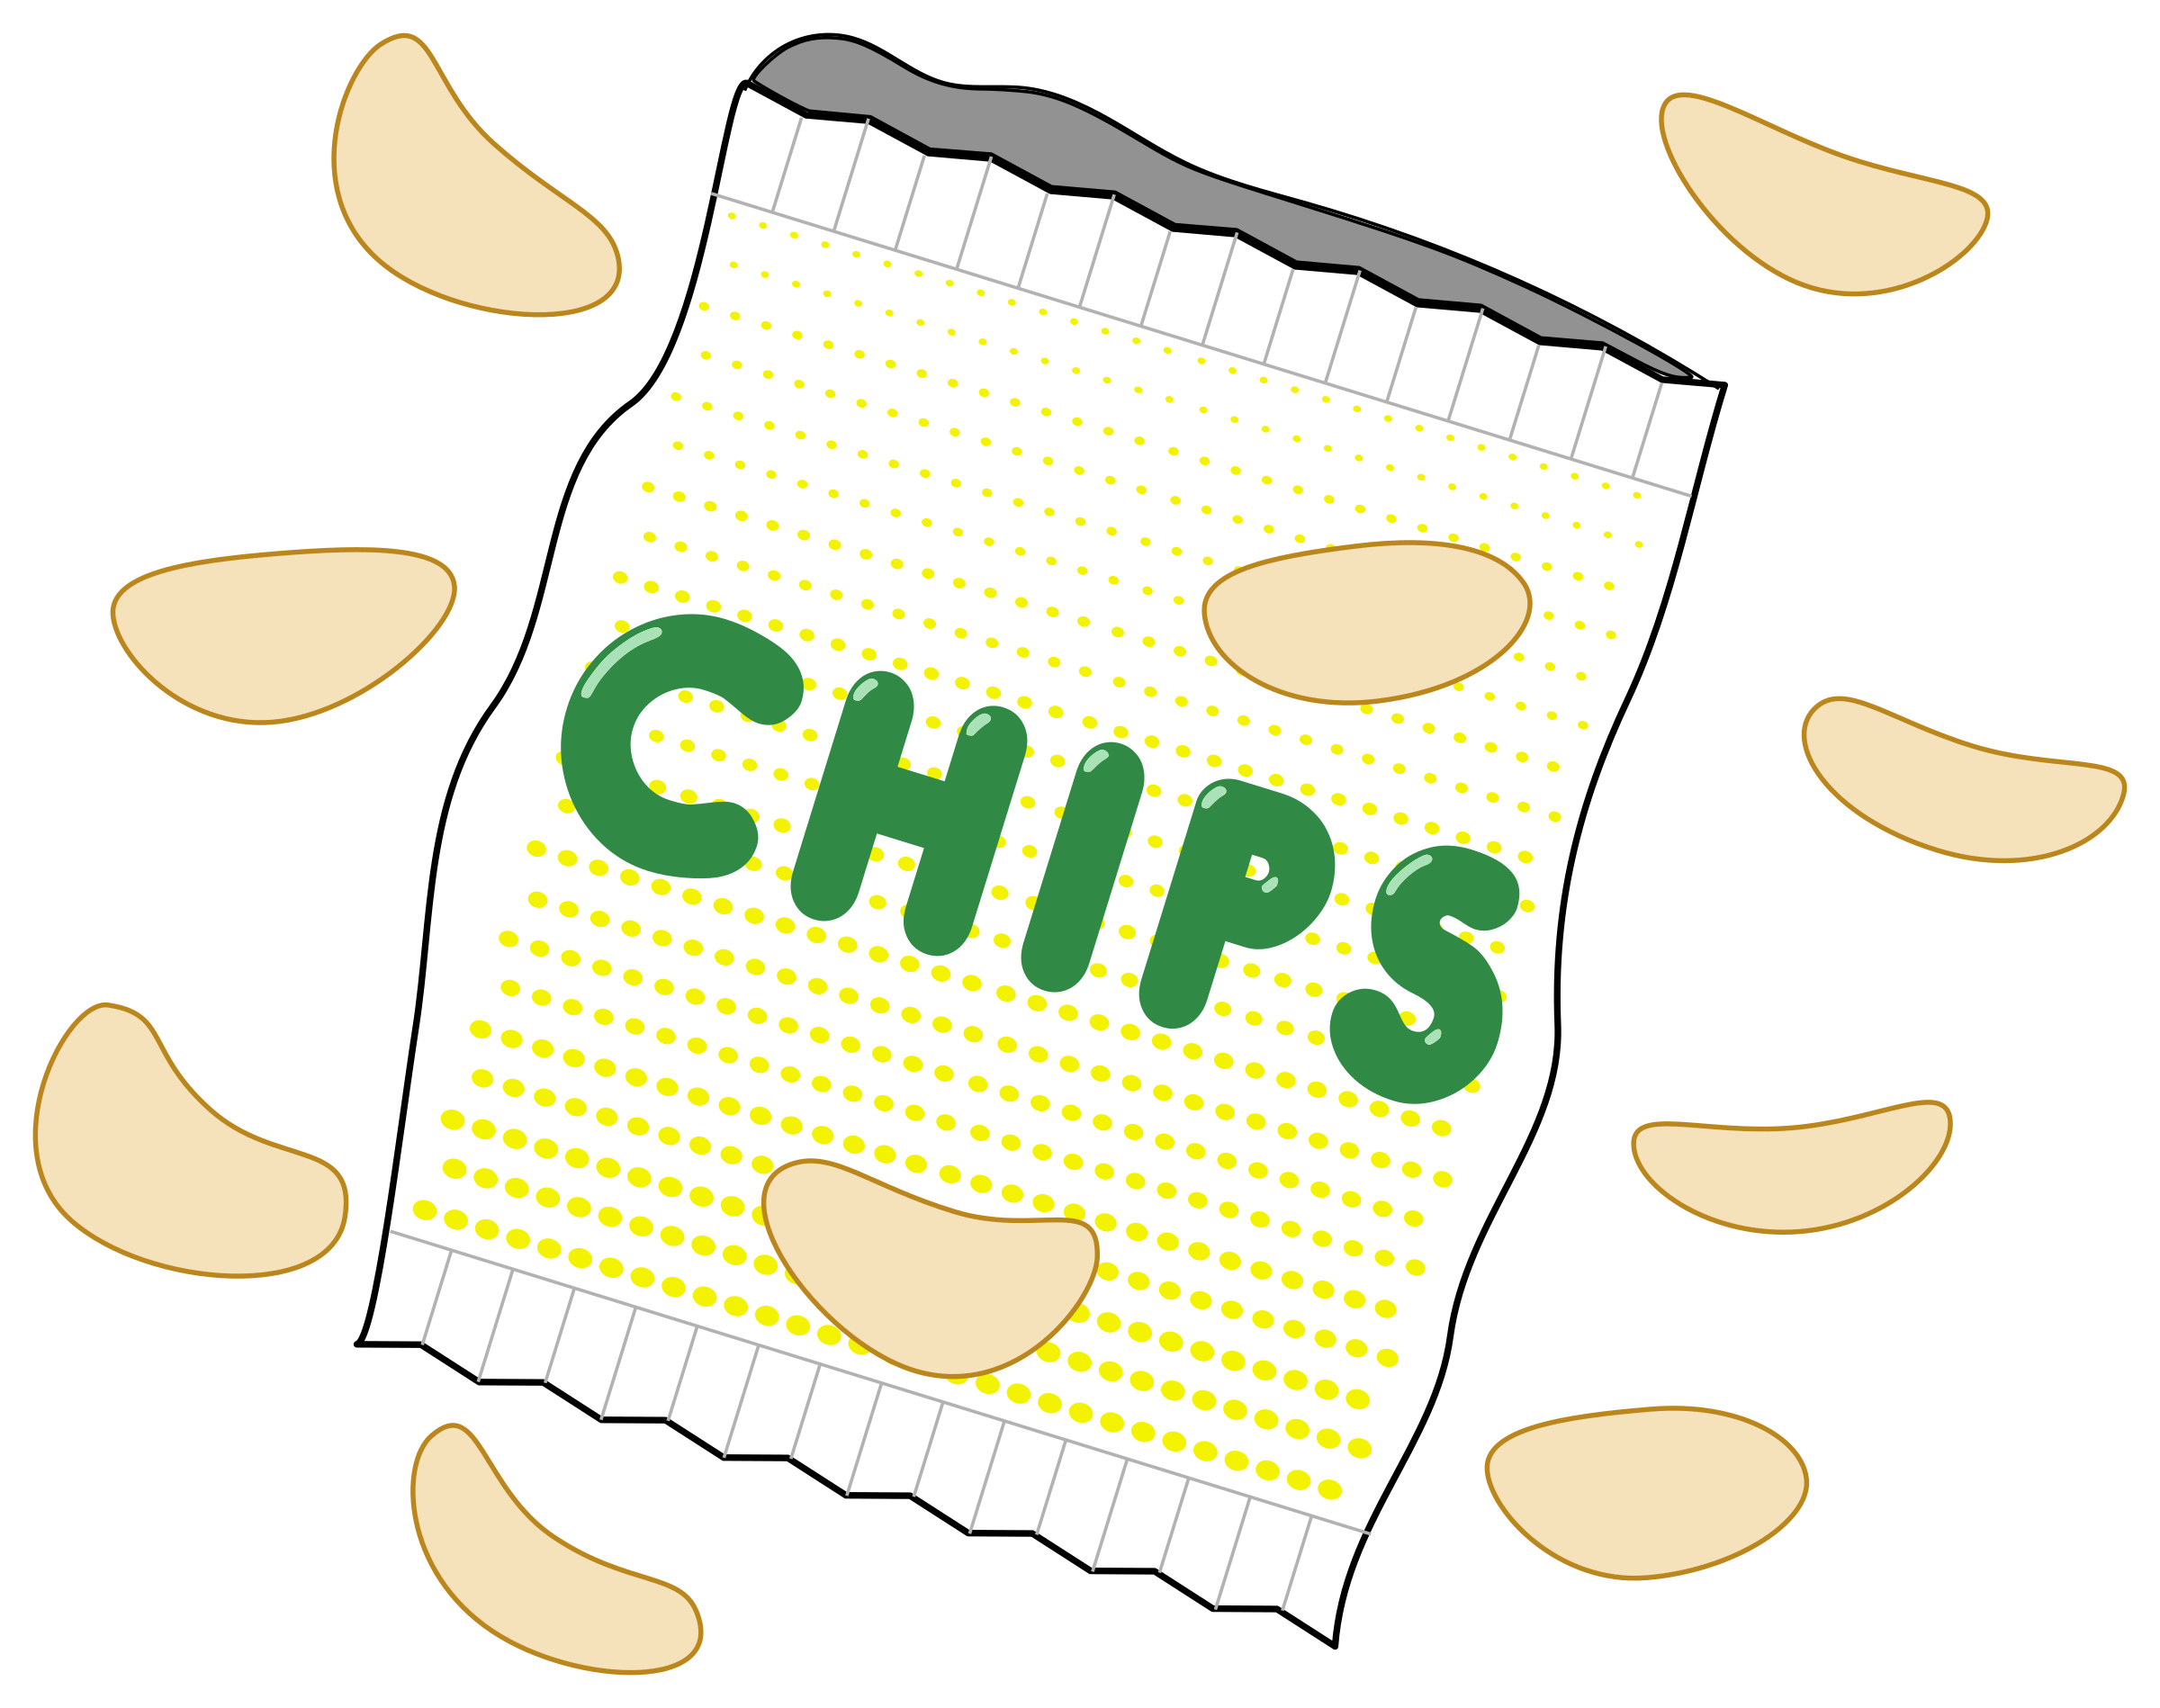 Chips by Arvin61r58